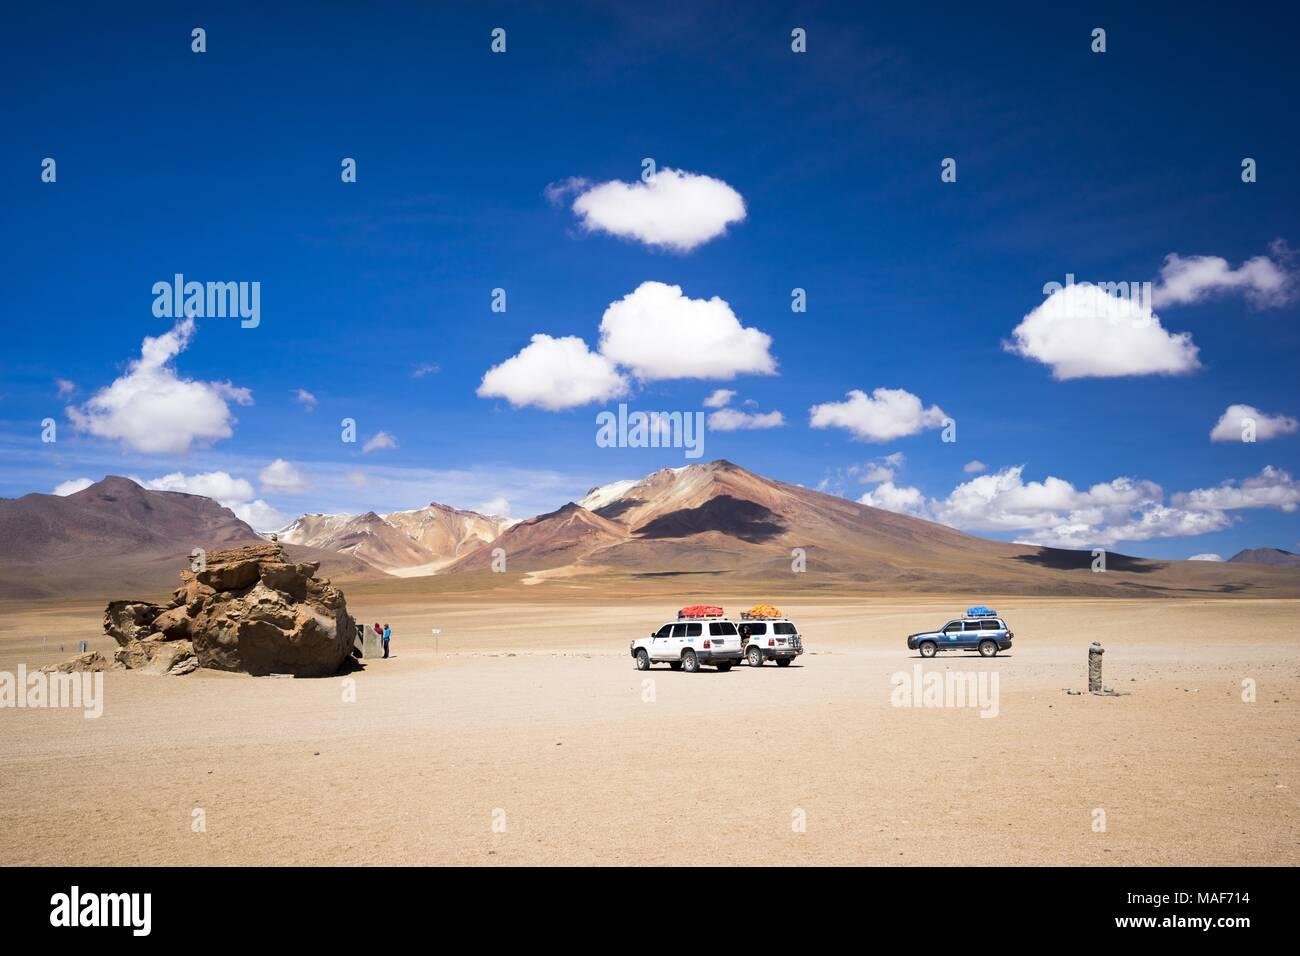 offroad expedition at Altiplano desert, Boivia - Stock Image